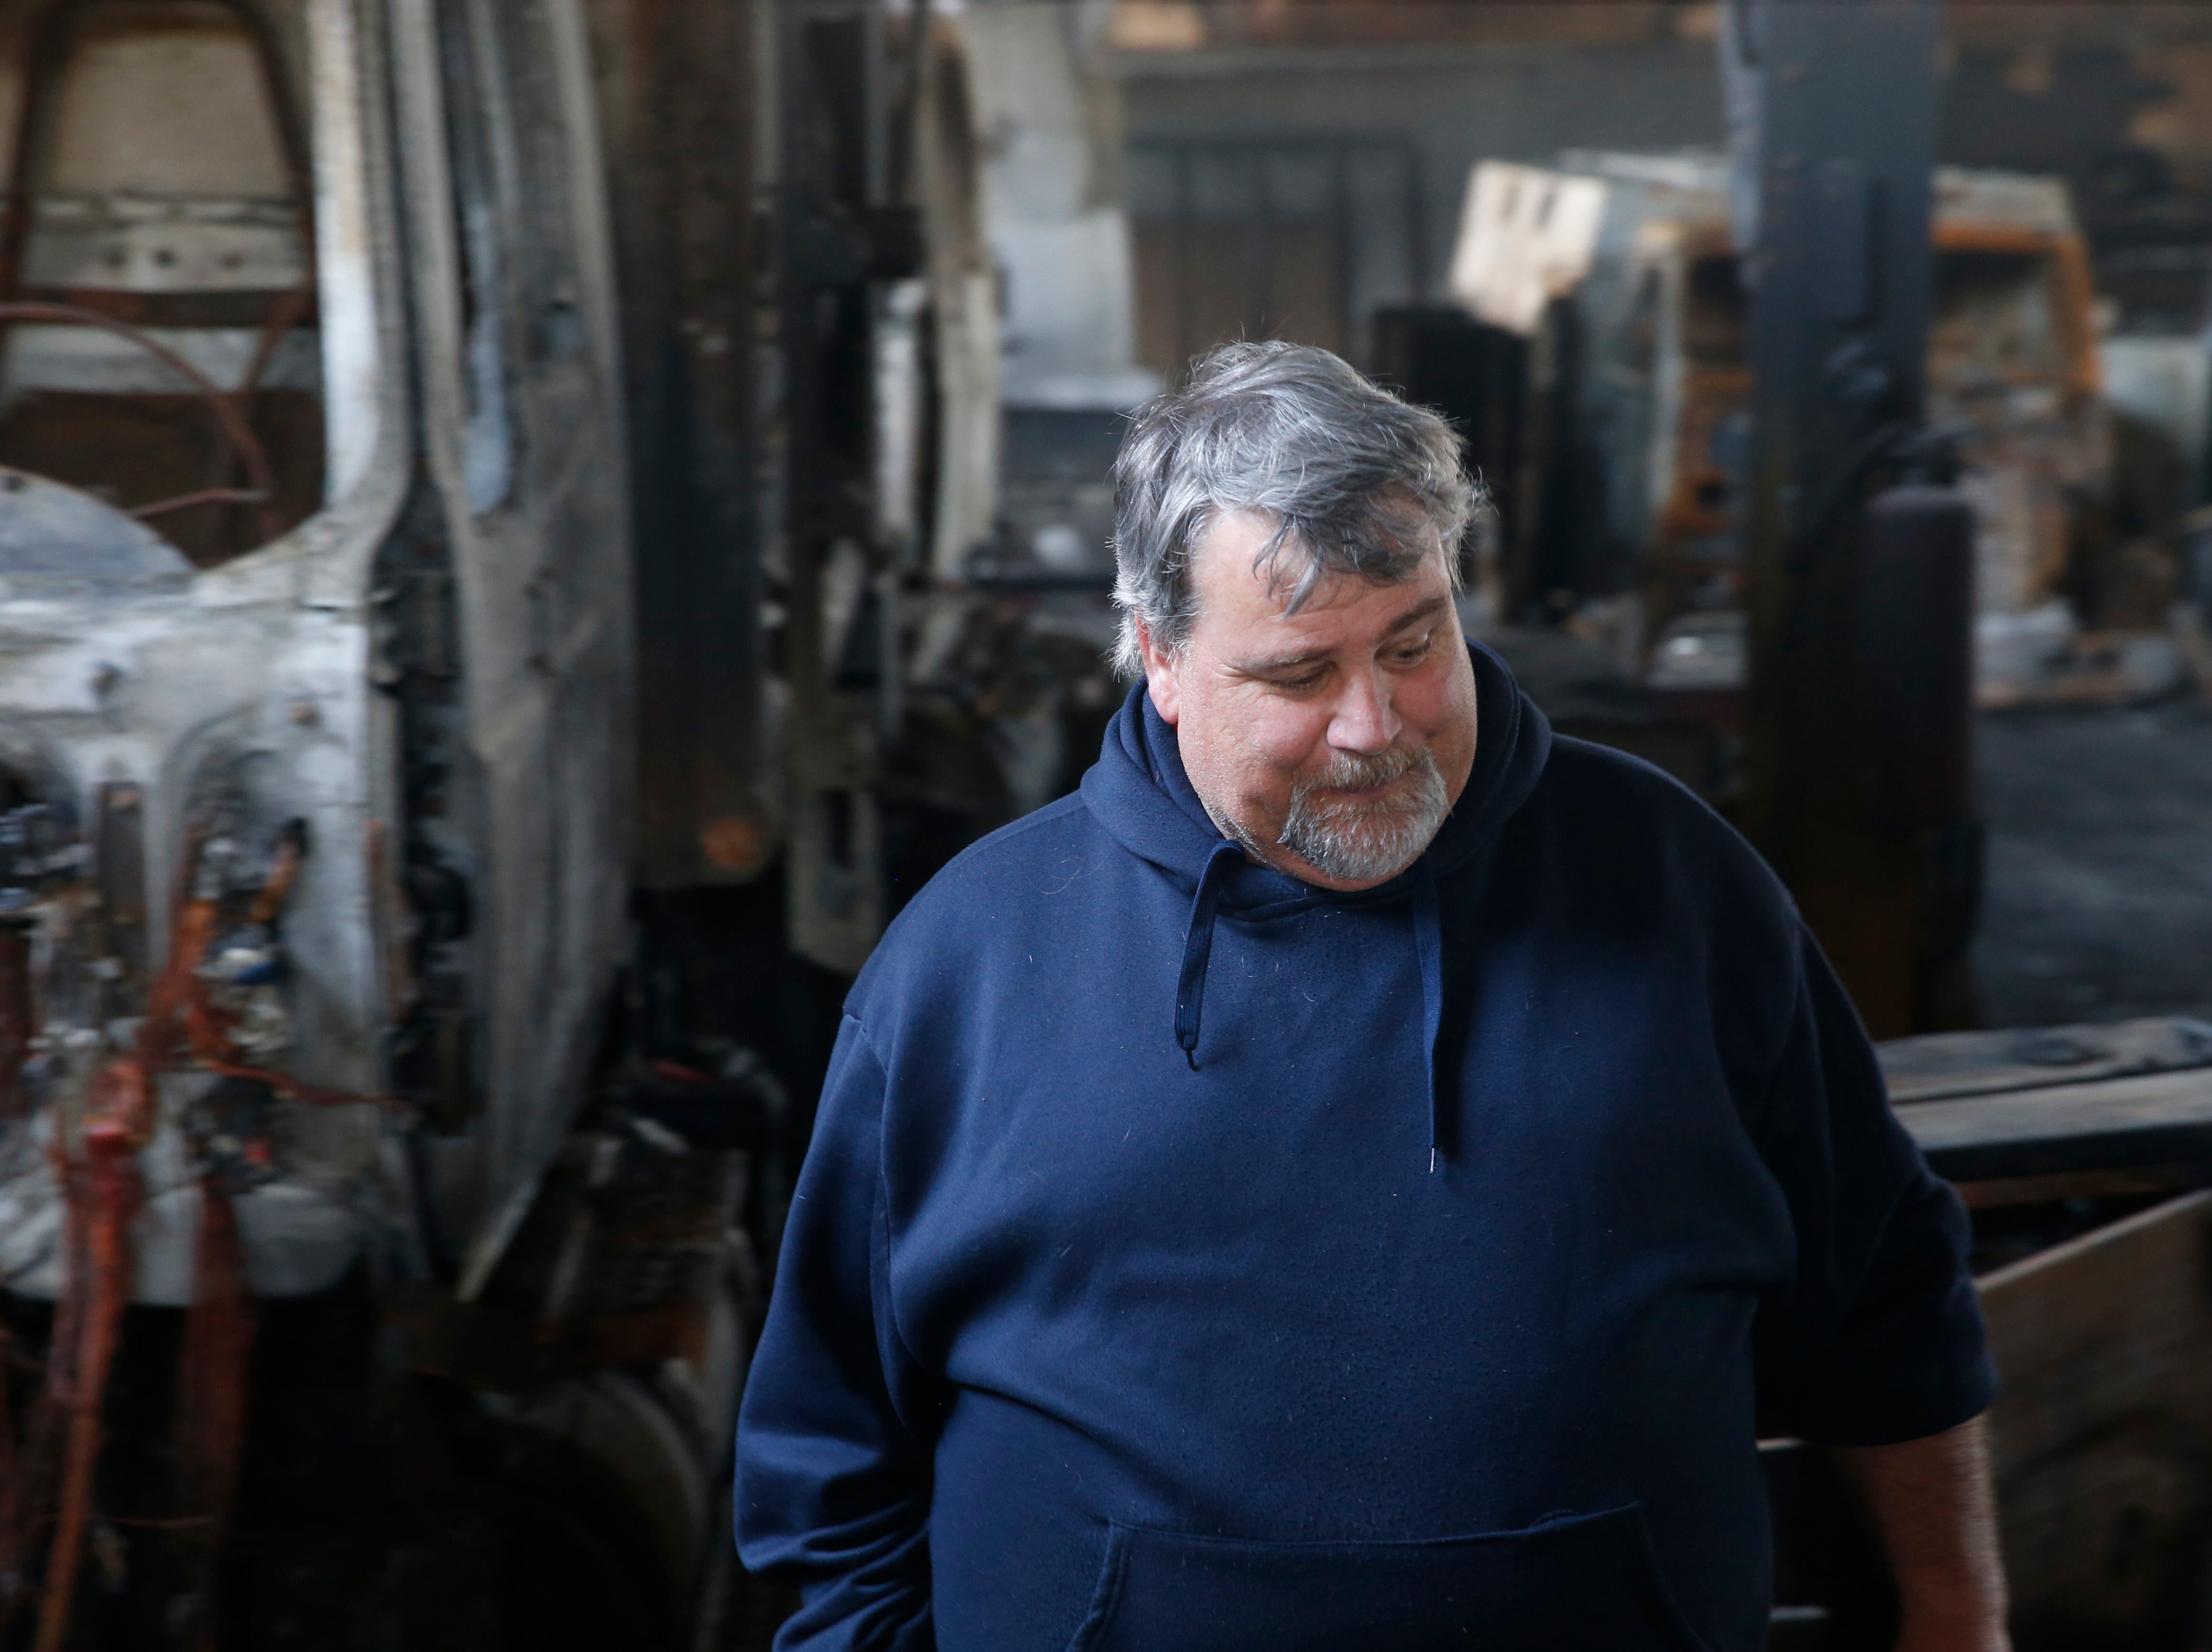 Patrick Gleason inside his company's building in the Town of Poughkeepsie on April 17, 2019. A massive fire in March destroyed much of the building's contents and the structural integrity of the building.